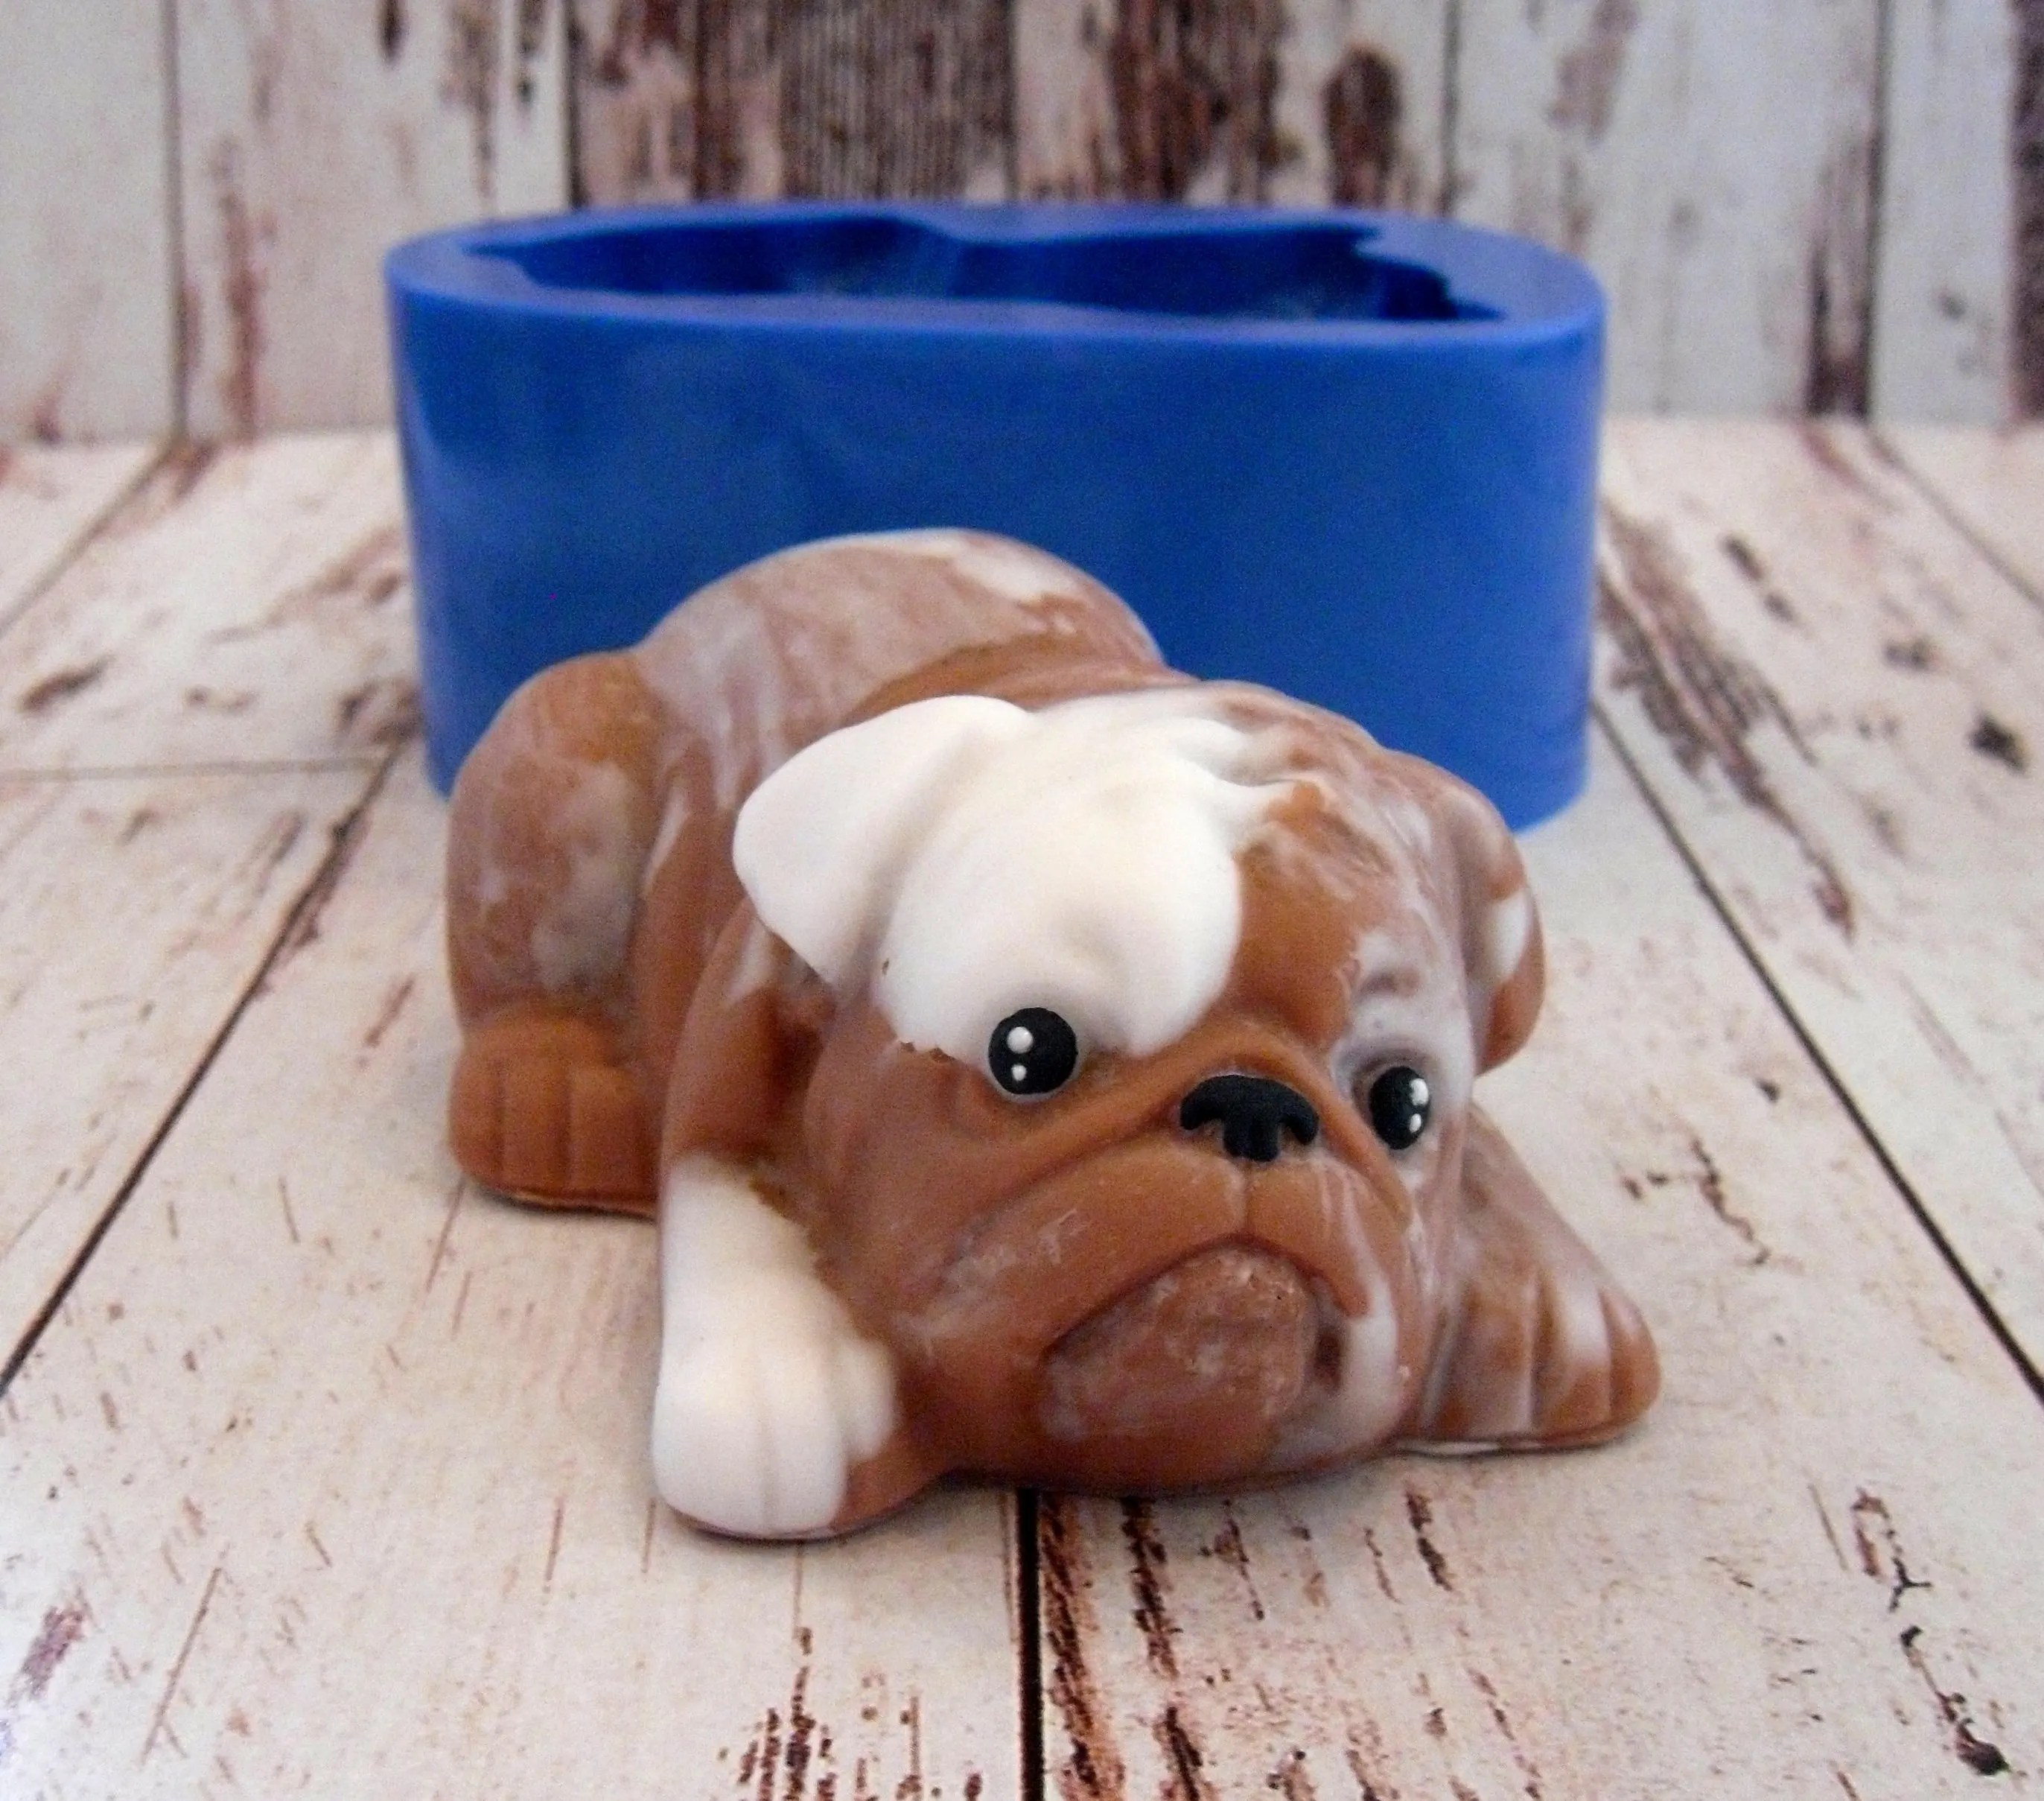 Silicone Soap Molds Australia Bulldog 2 Silicone Mold For Soap And Candles Making Mould